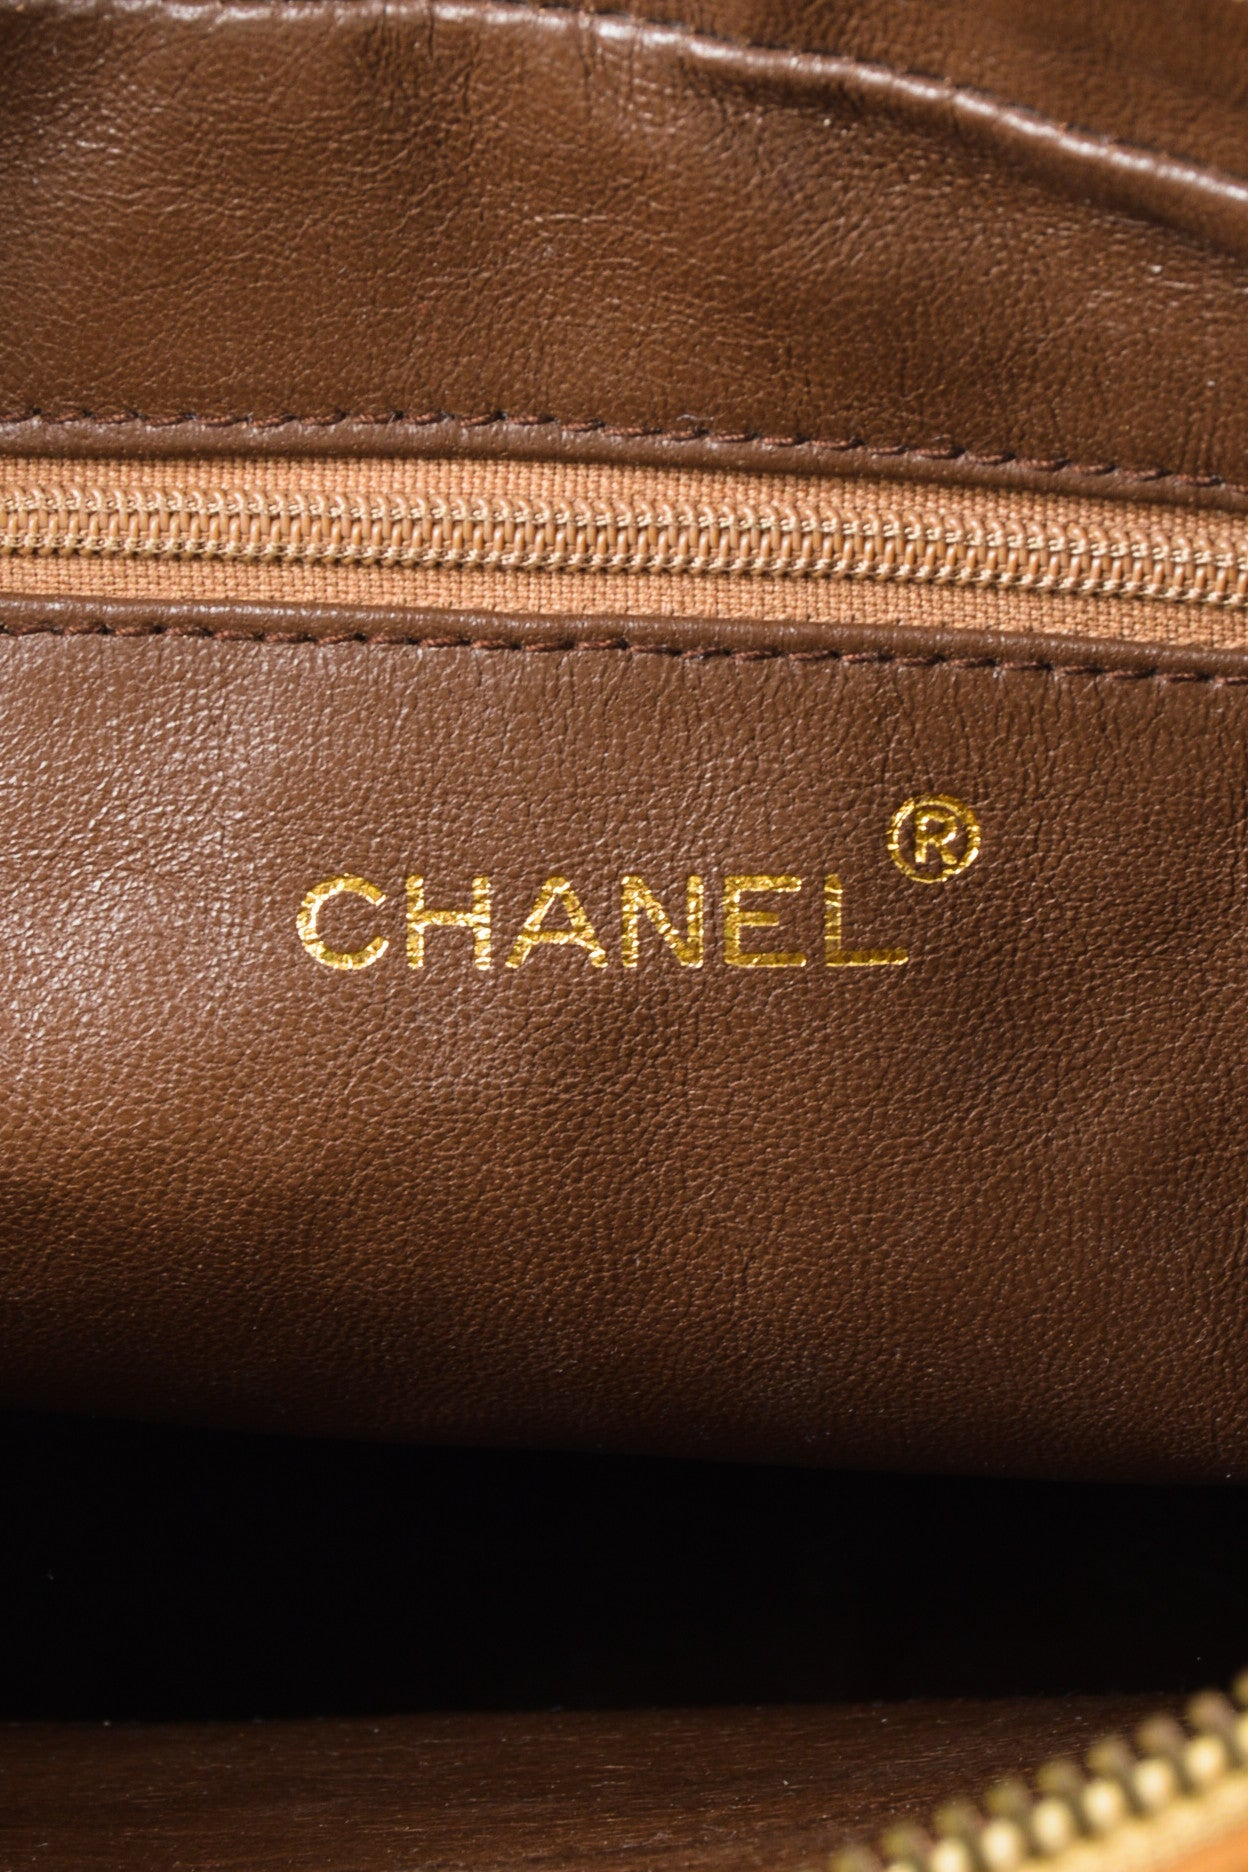 Caramel Tan Chanel Lambskin Leather Quilted 'CC' Tassel Shoulder Bag Brand